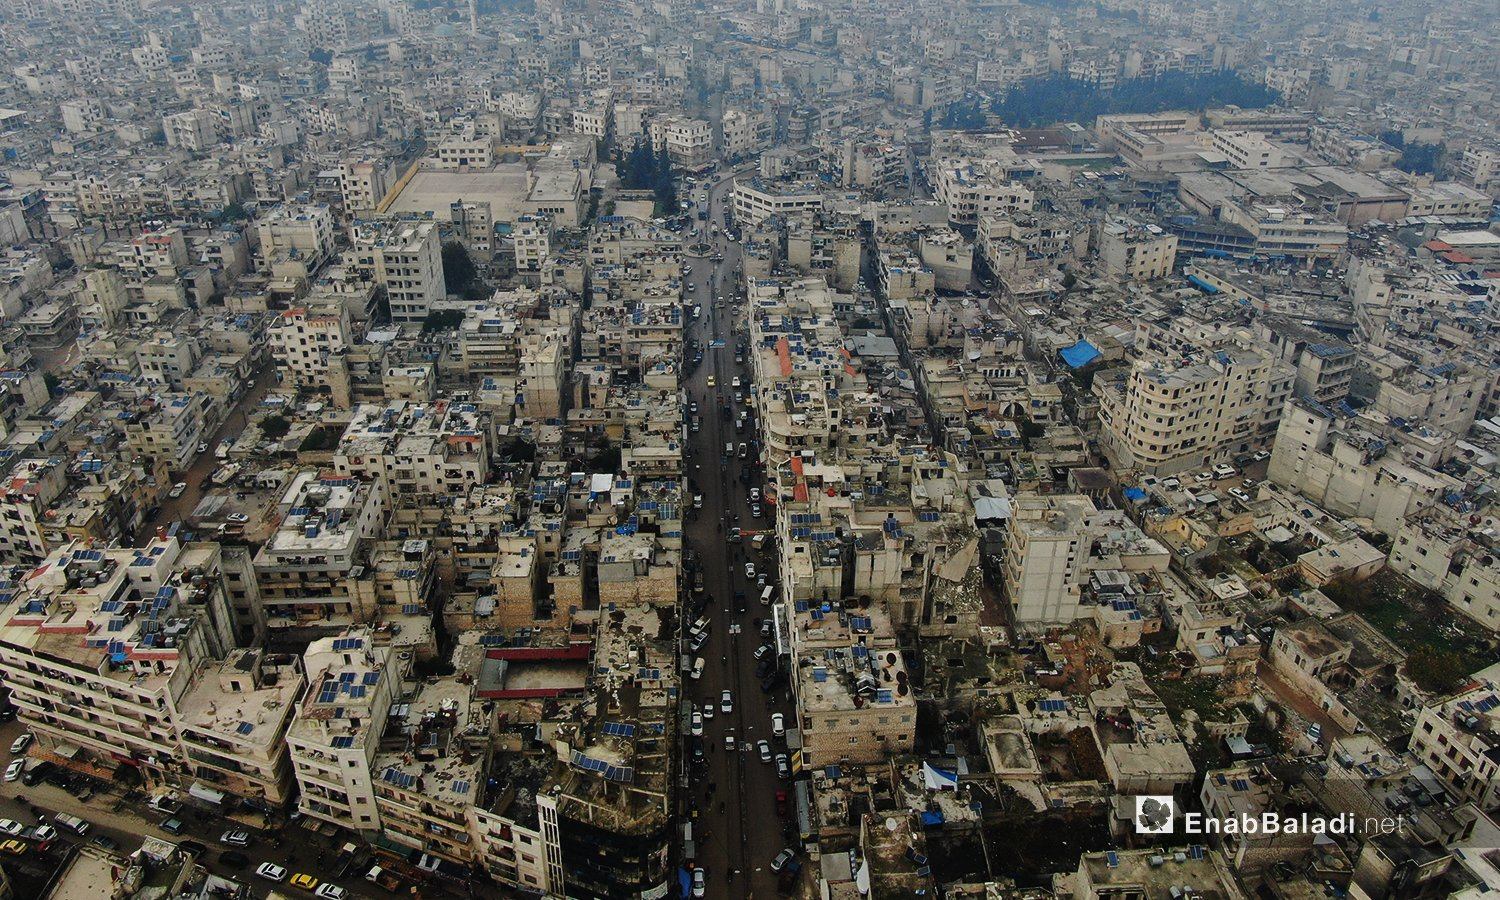 An aerial image of Idlib city showing its buildings and main streets - 24 October 2020 (Enab Baladi / Yousef Ghuraibi)